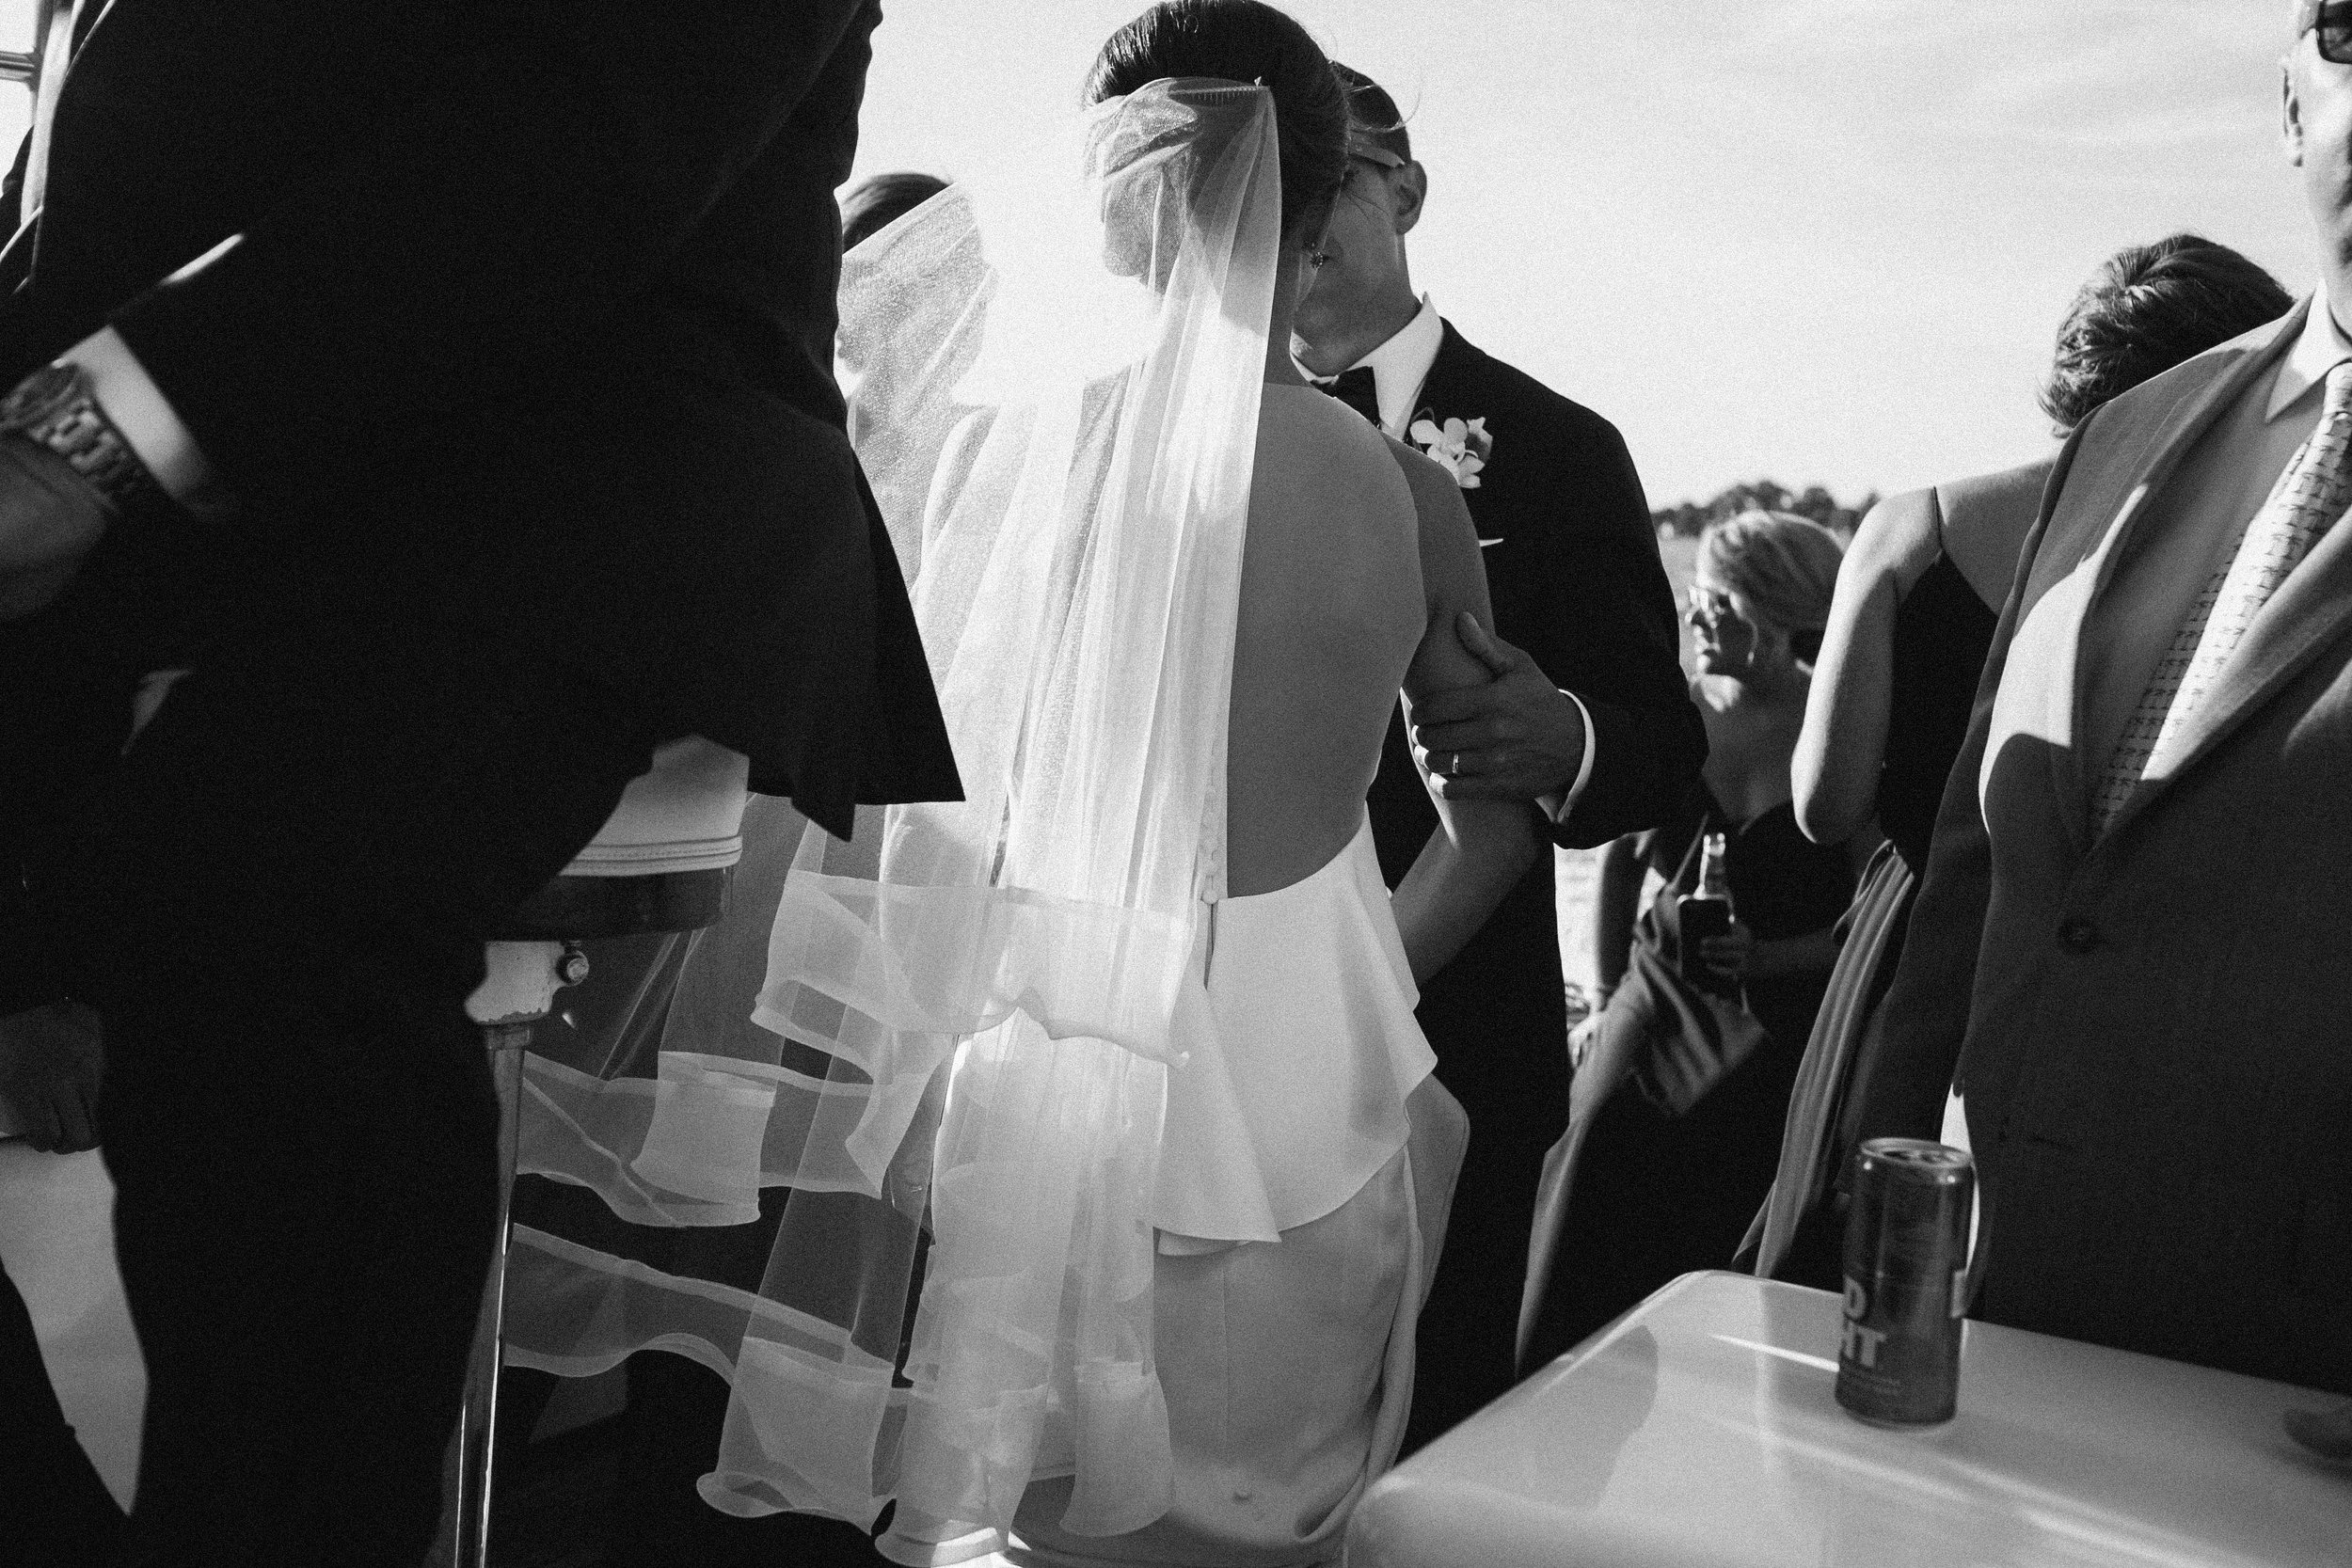 katie stoops photography-solomans island wedding40.jpg